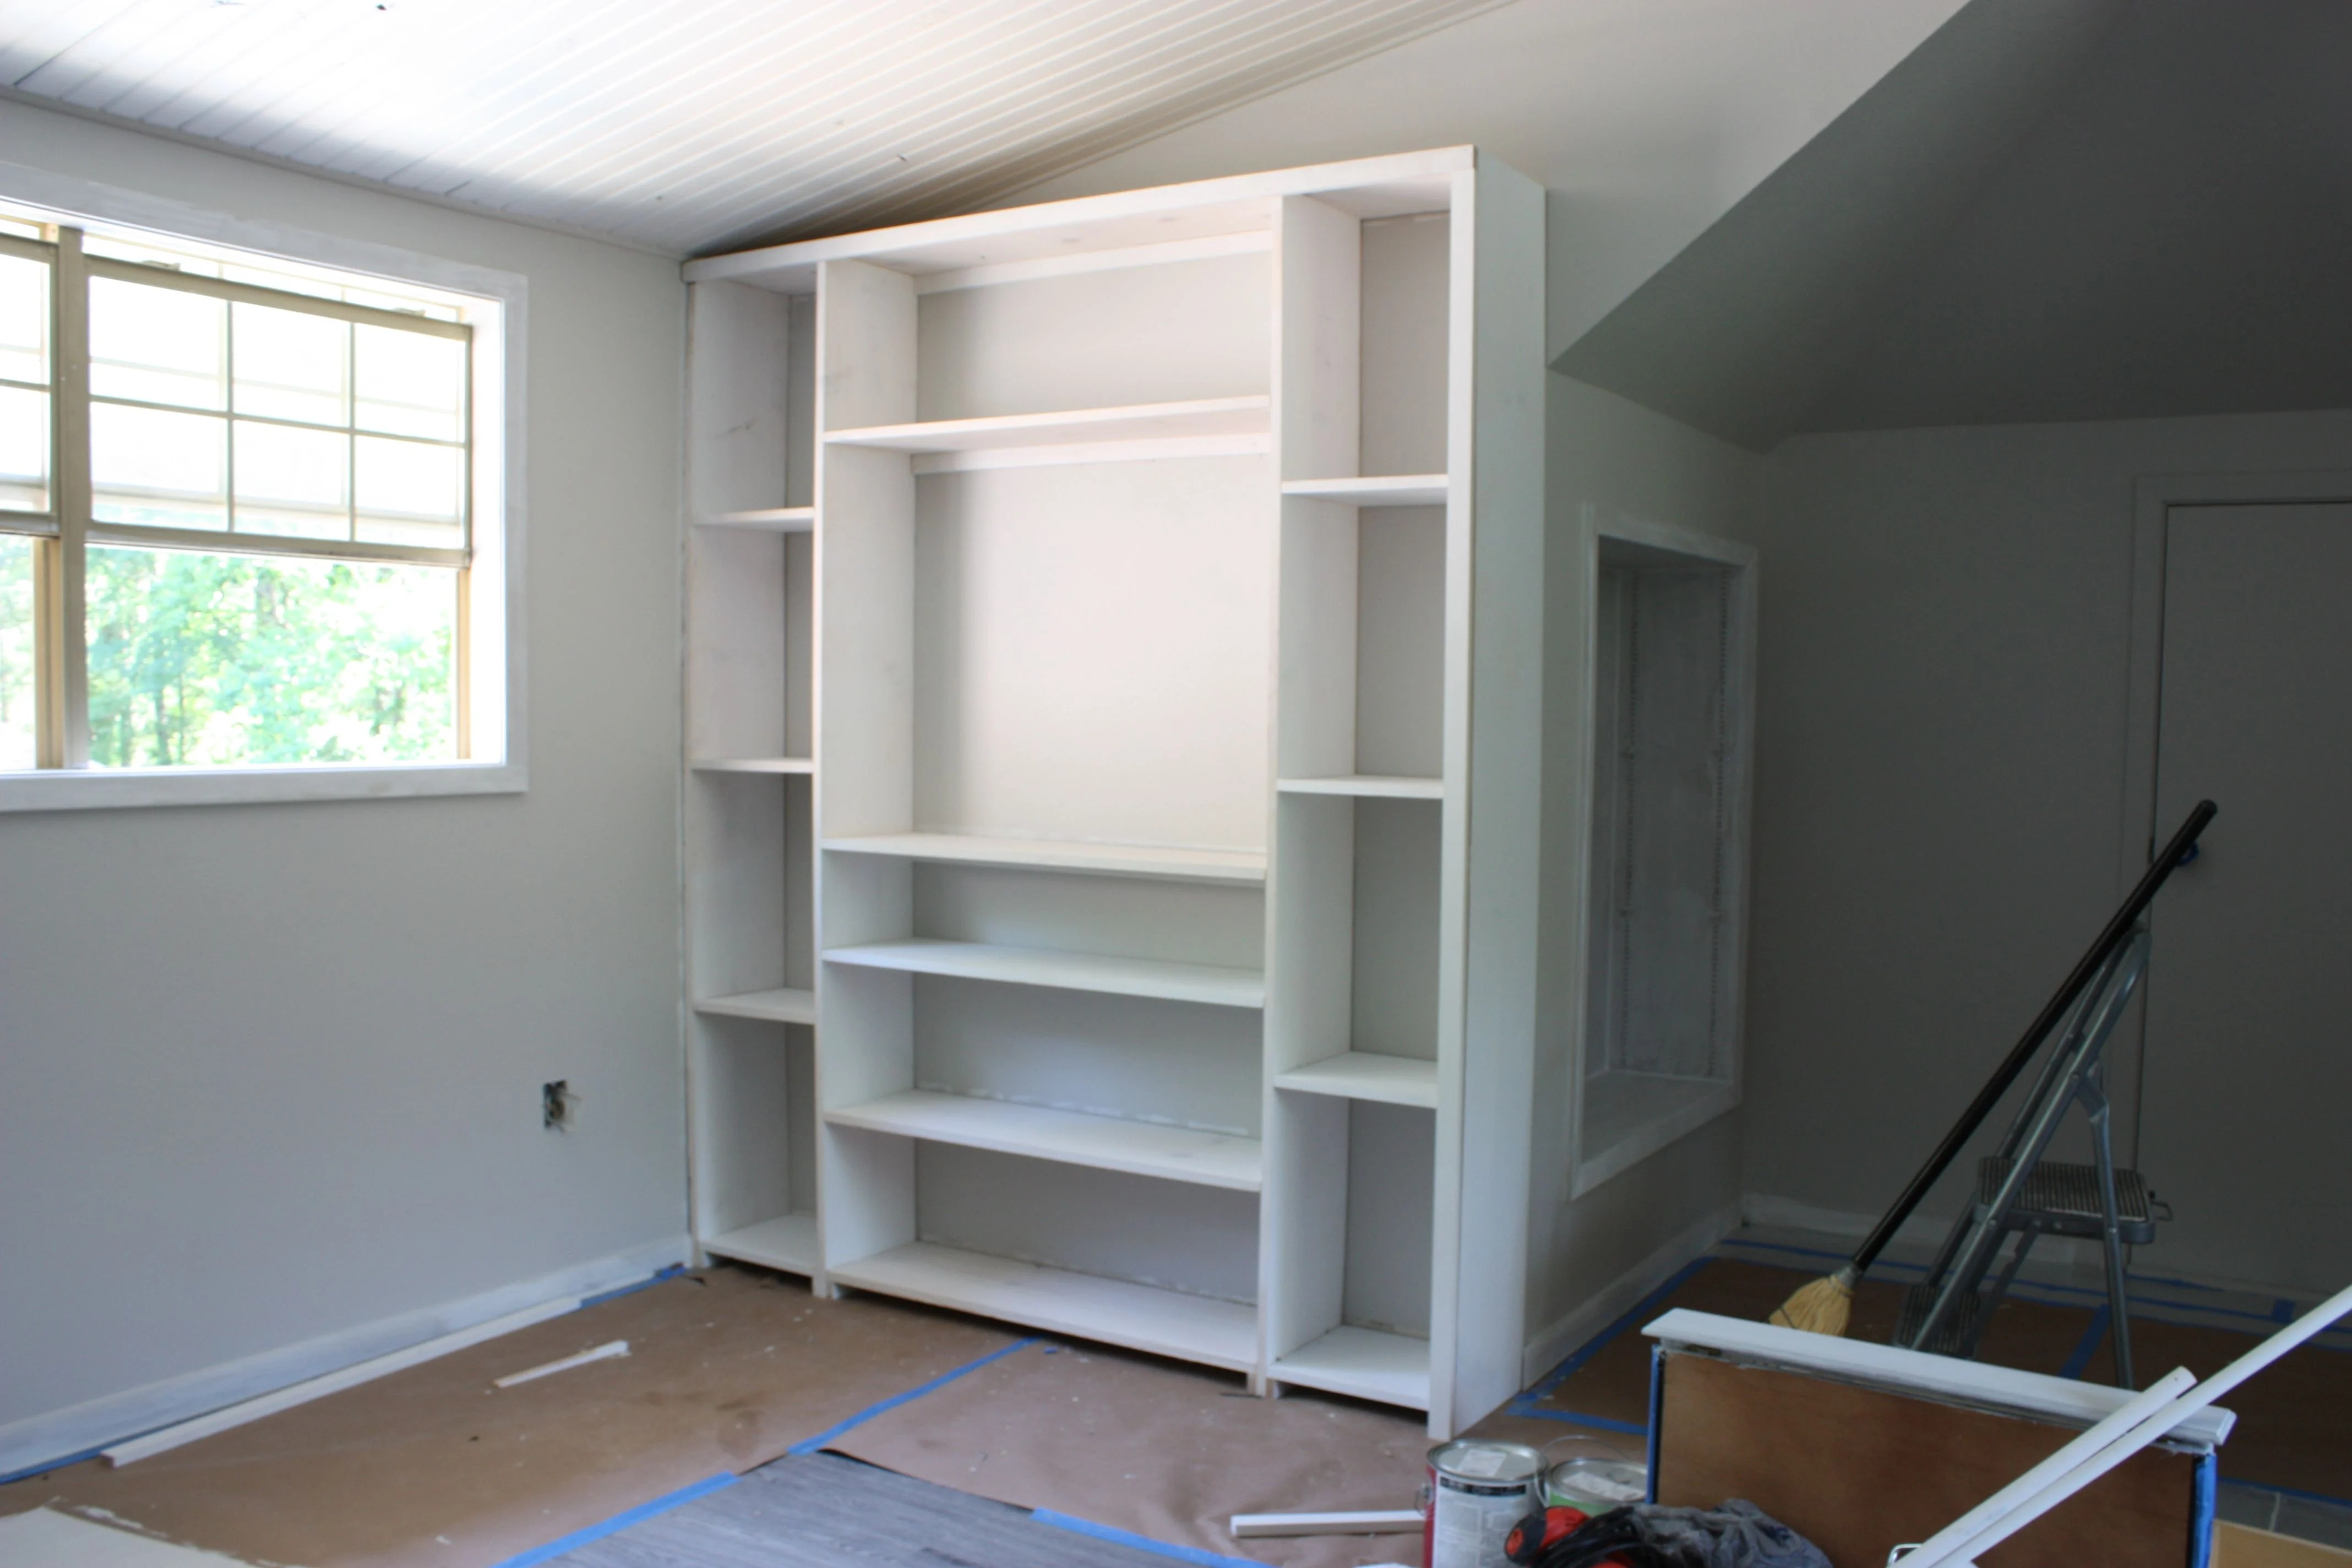 ... How To Build Inexpensive Built Ins Using Pre Made Stock Cabinets And  Standard Size Plywood The